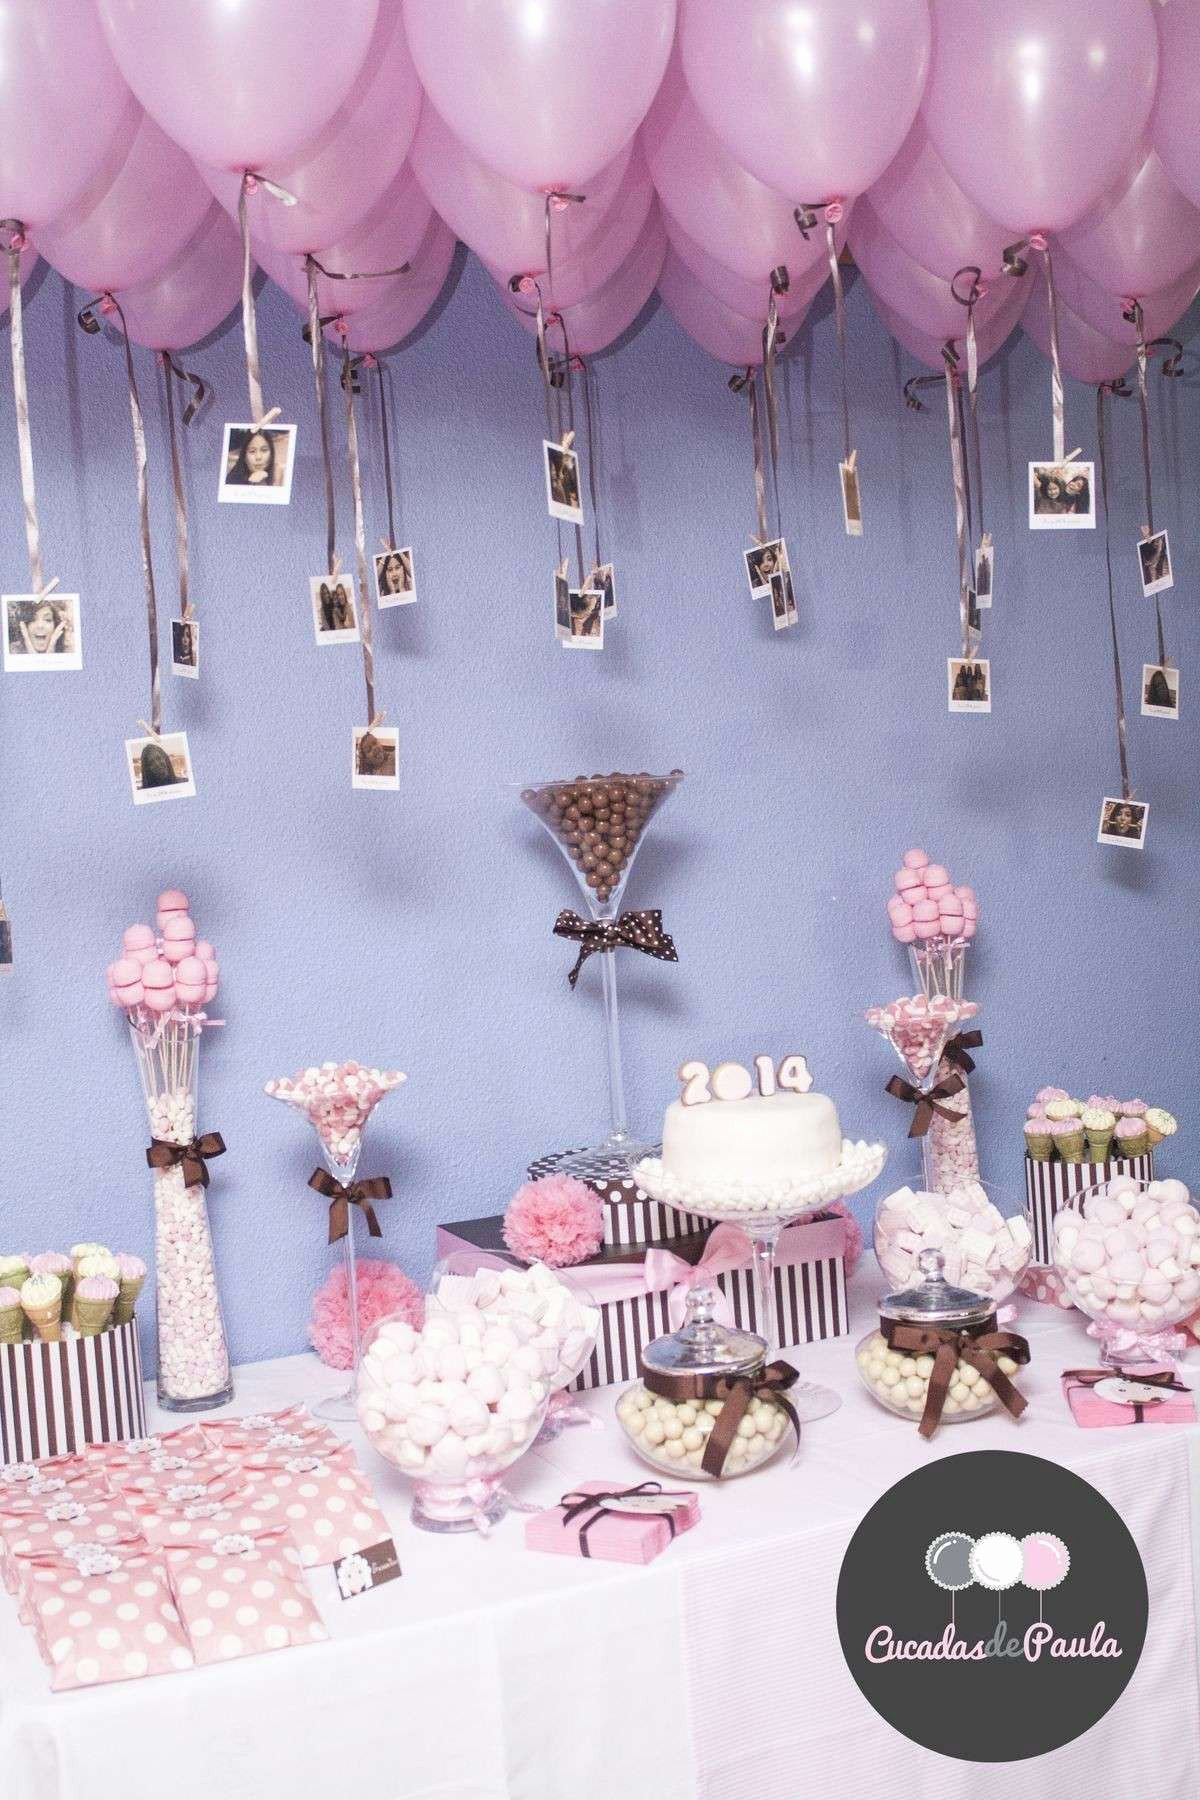 Birthday Decoration Ideas Pictures New Awesome First Birthday Decoration Ideas at Home for Girl